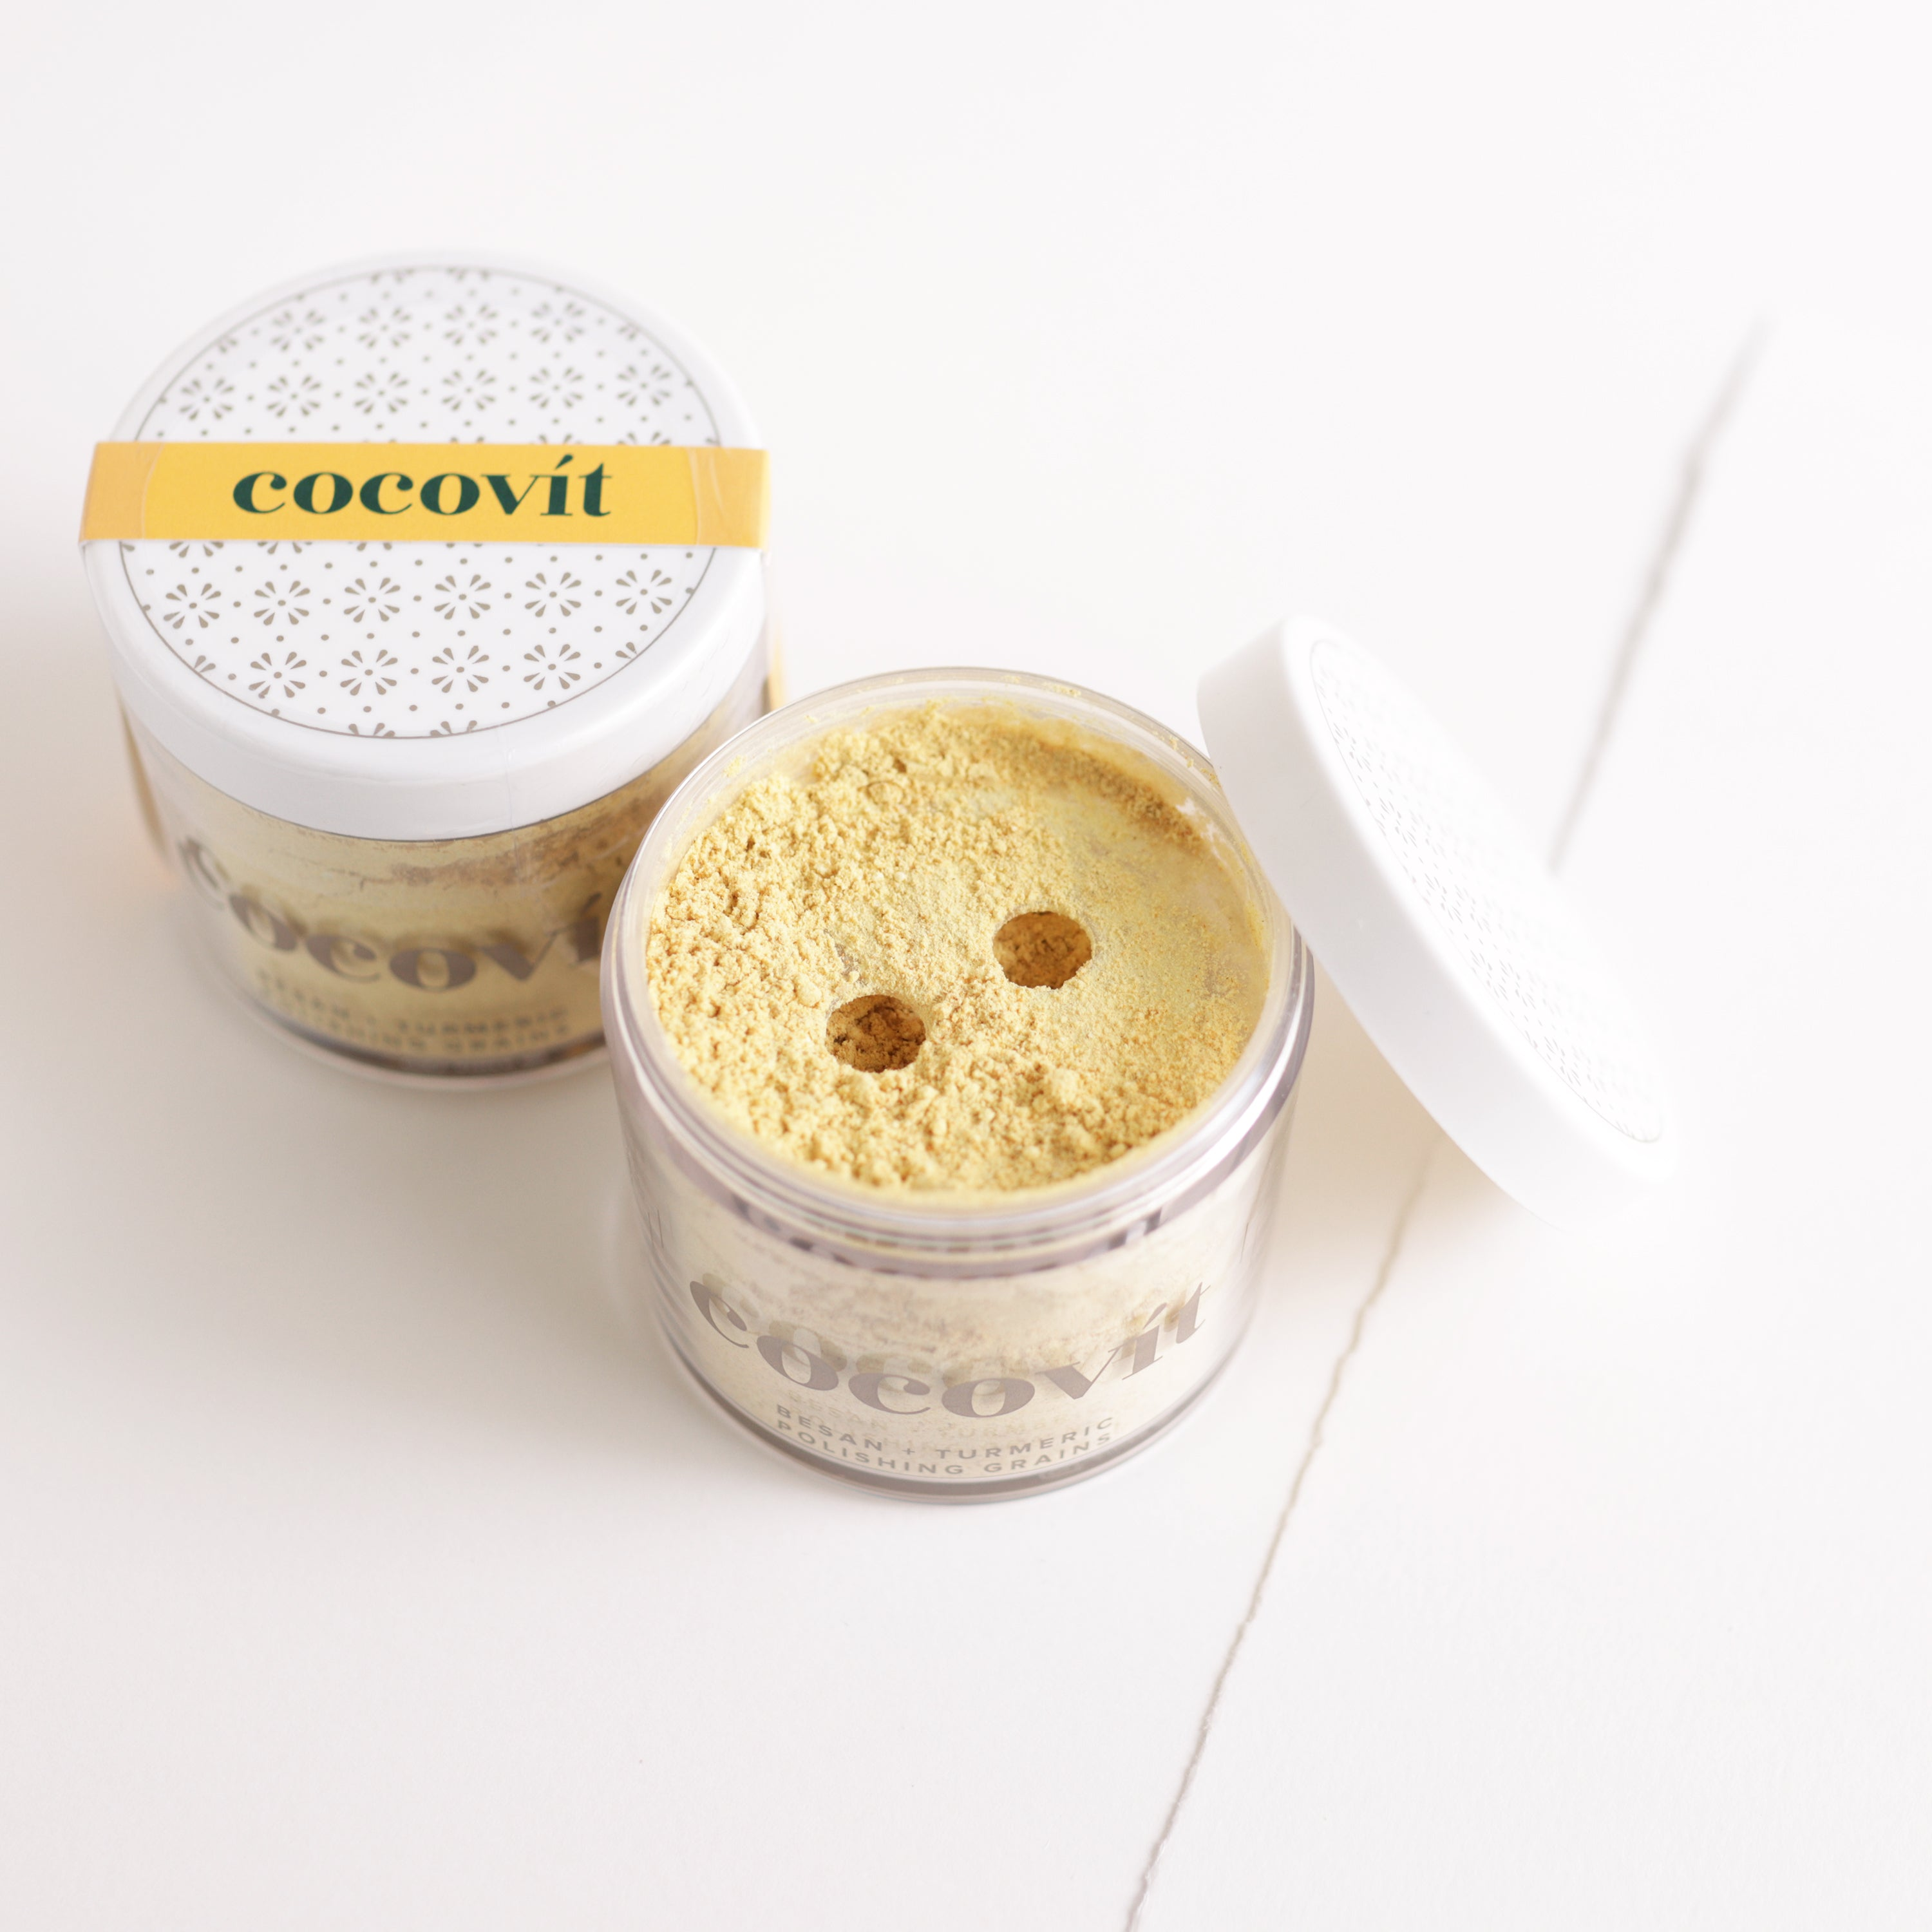 Cocovit Besan and Turmeric Polishing Grains